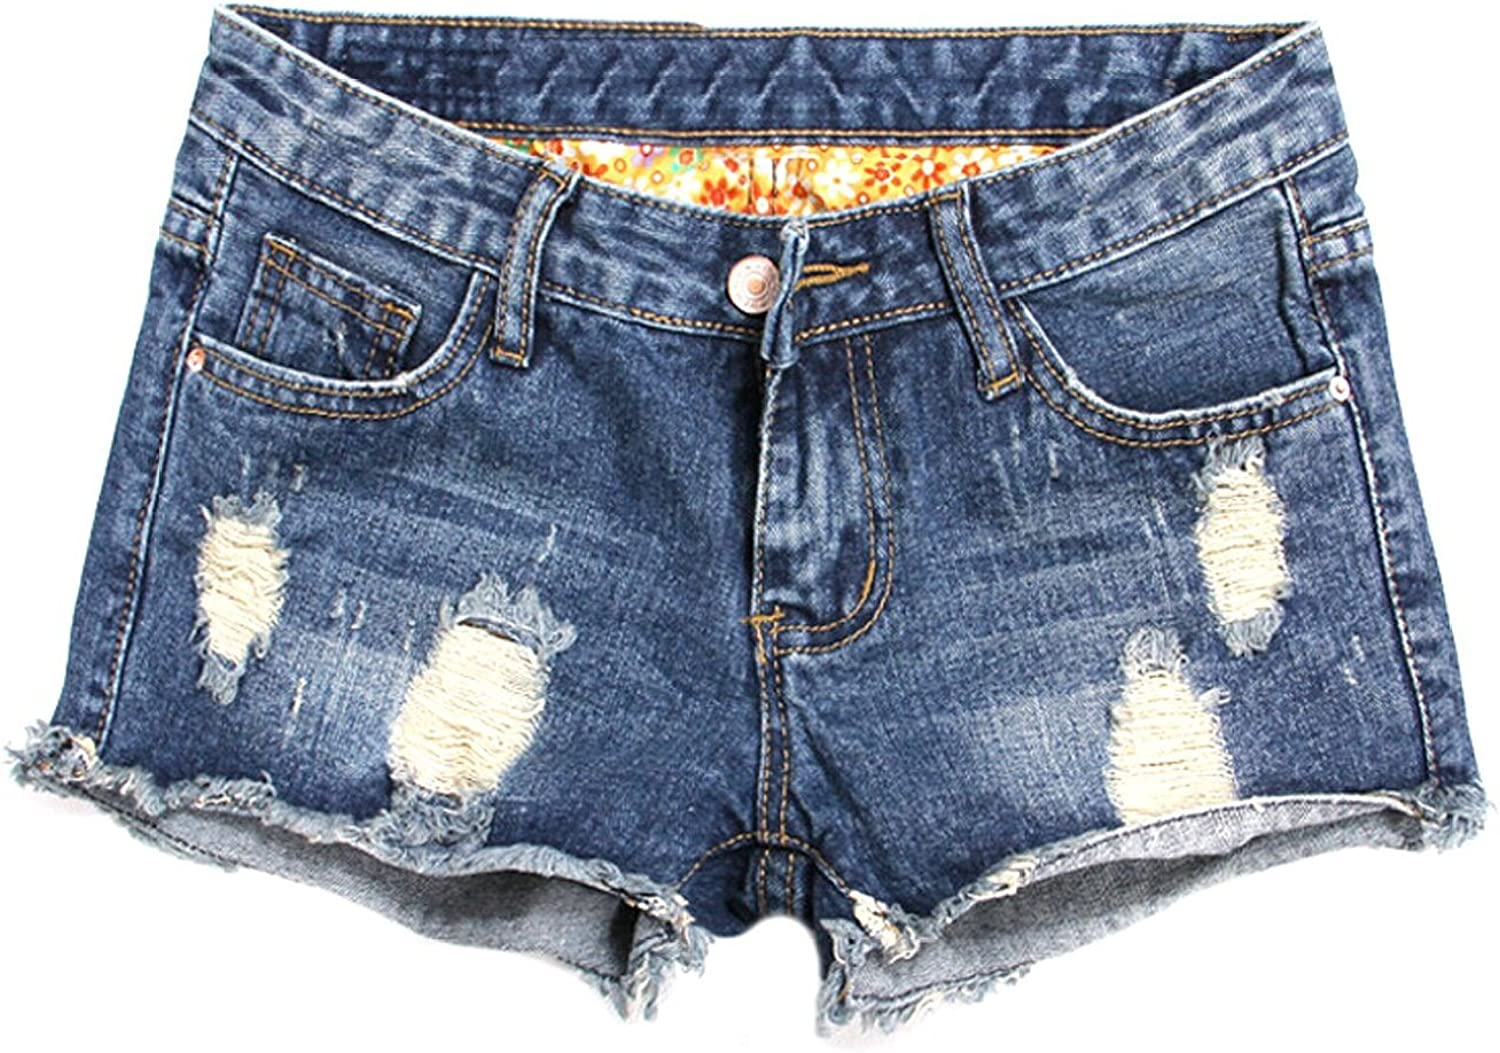 Yollmart Women's Credence Low Rise Ripped Distressed Max 40% OFF Shorts Jeans Denim